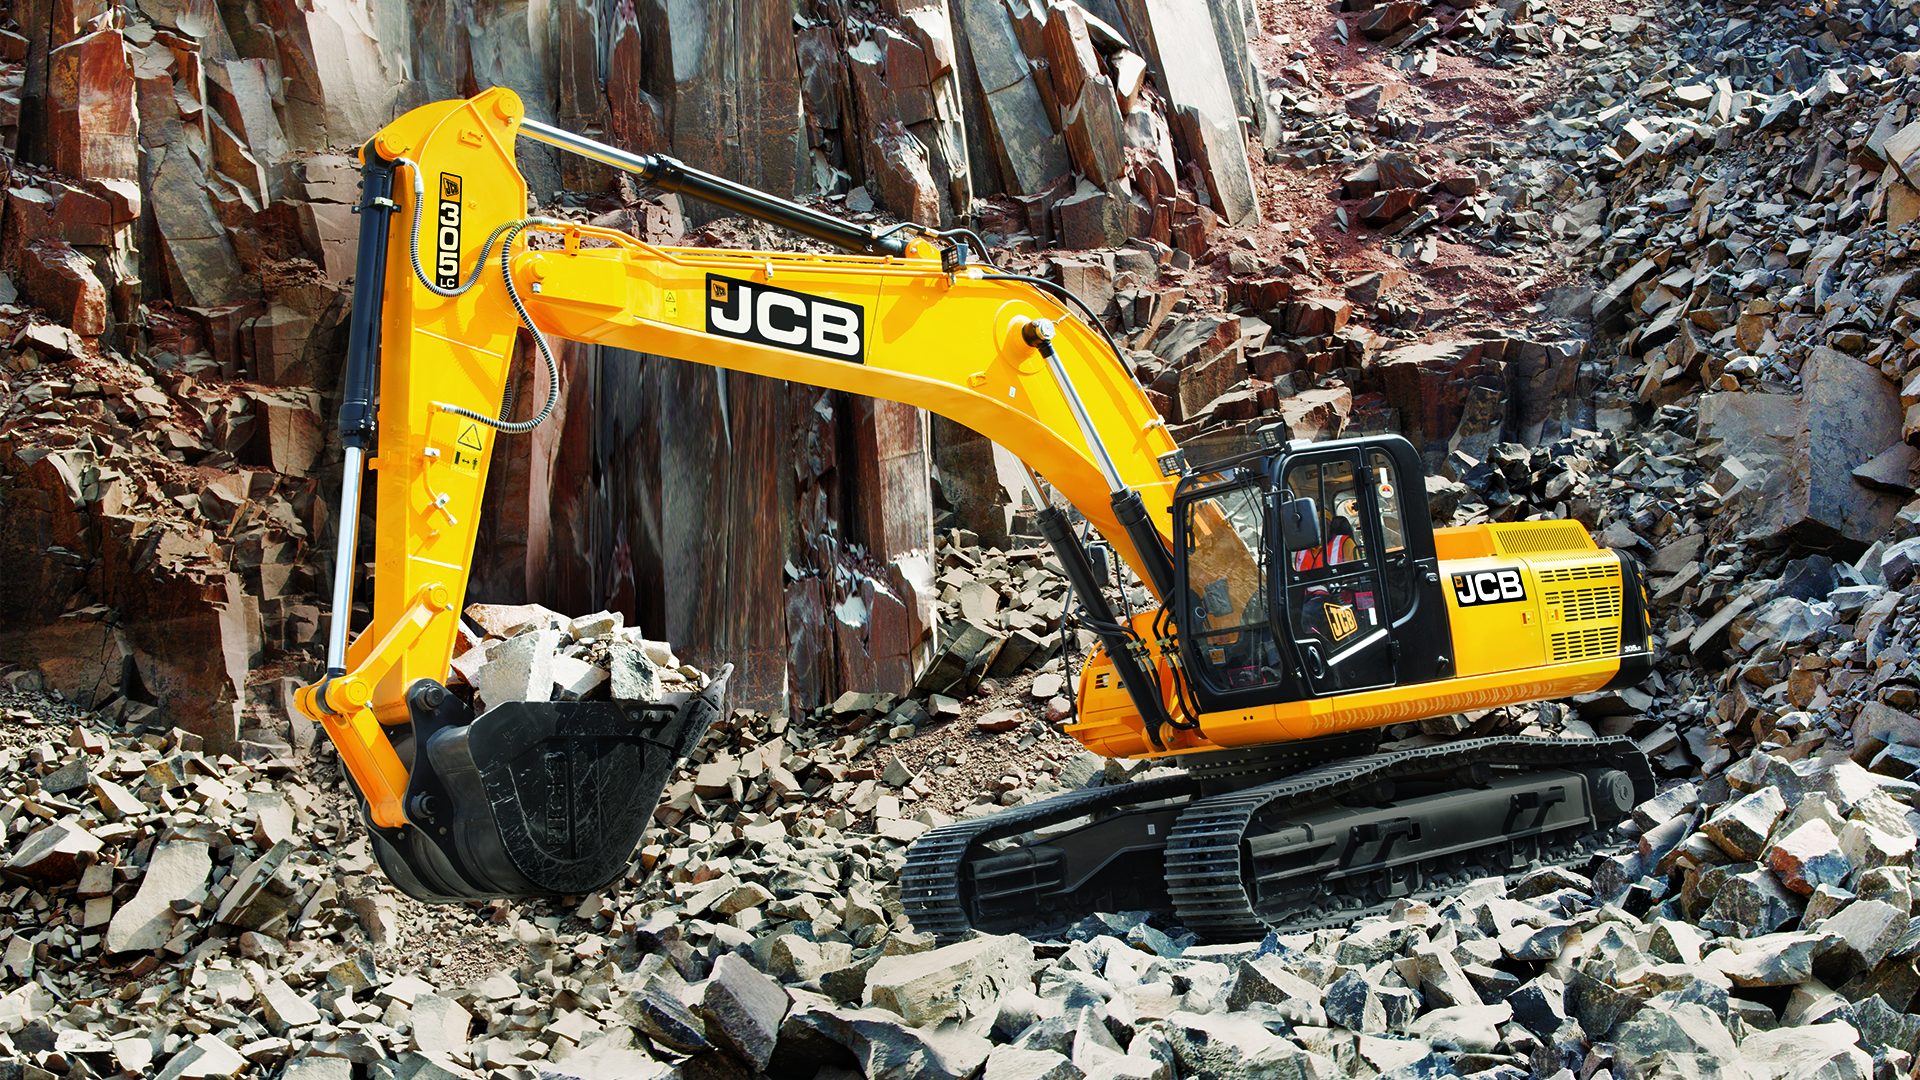 JCB 305LC Tracked Excavator Wallpaper